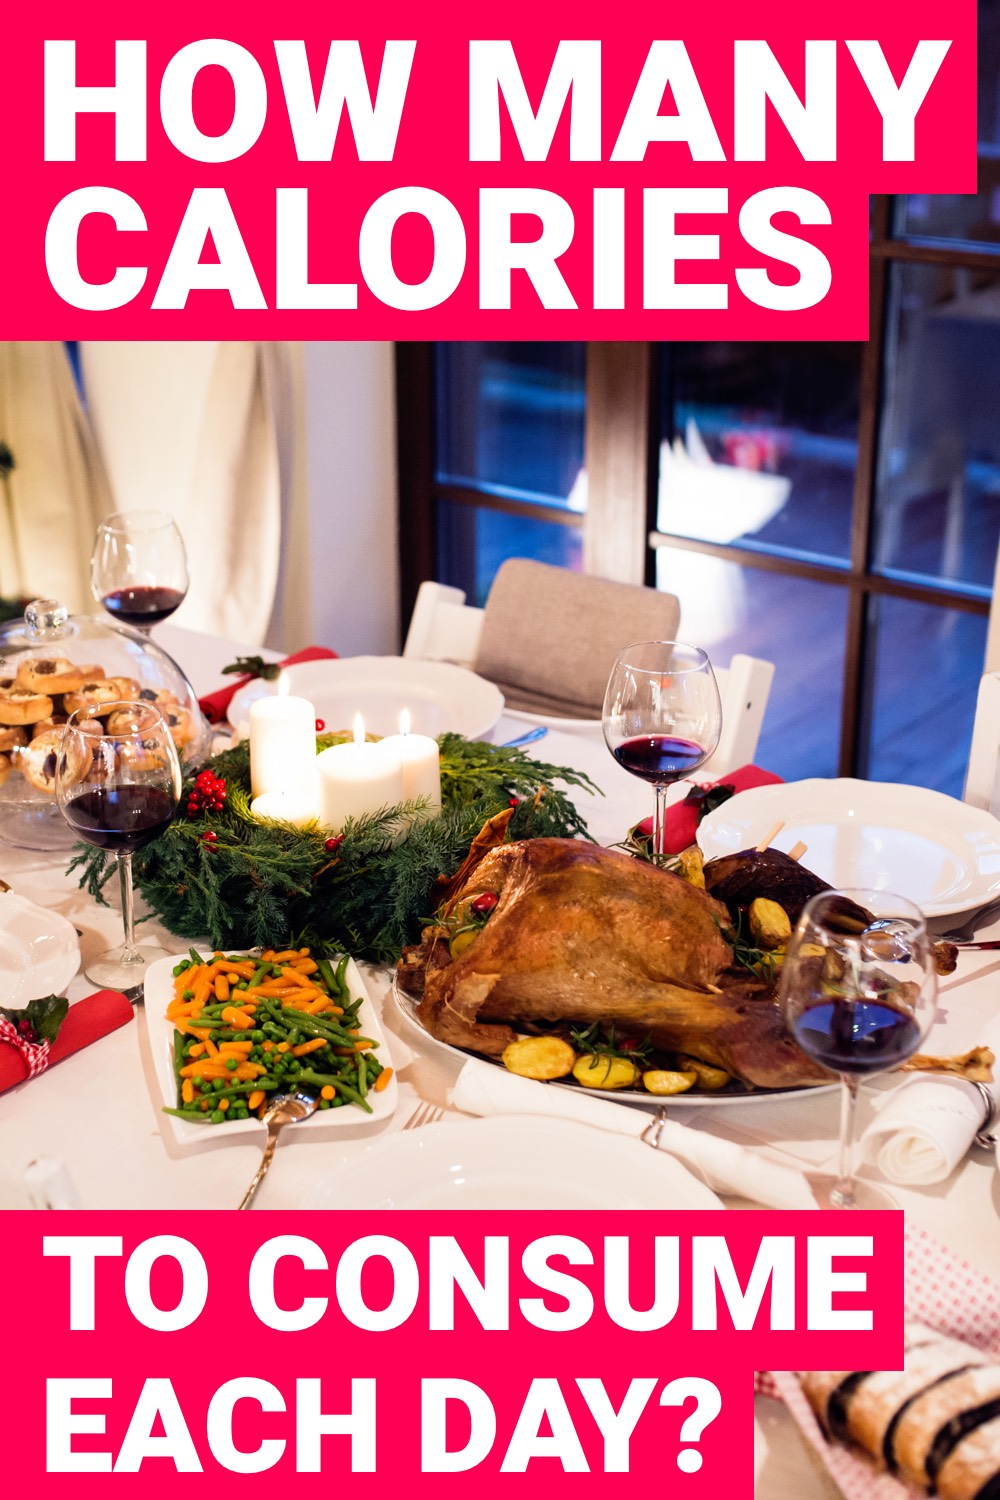 Counting calories are a big part of weight loss. How many calories should you eat per day to lose weight? Here you can find out.